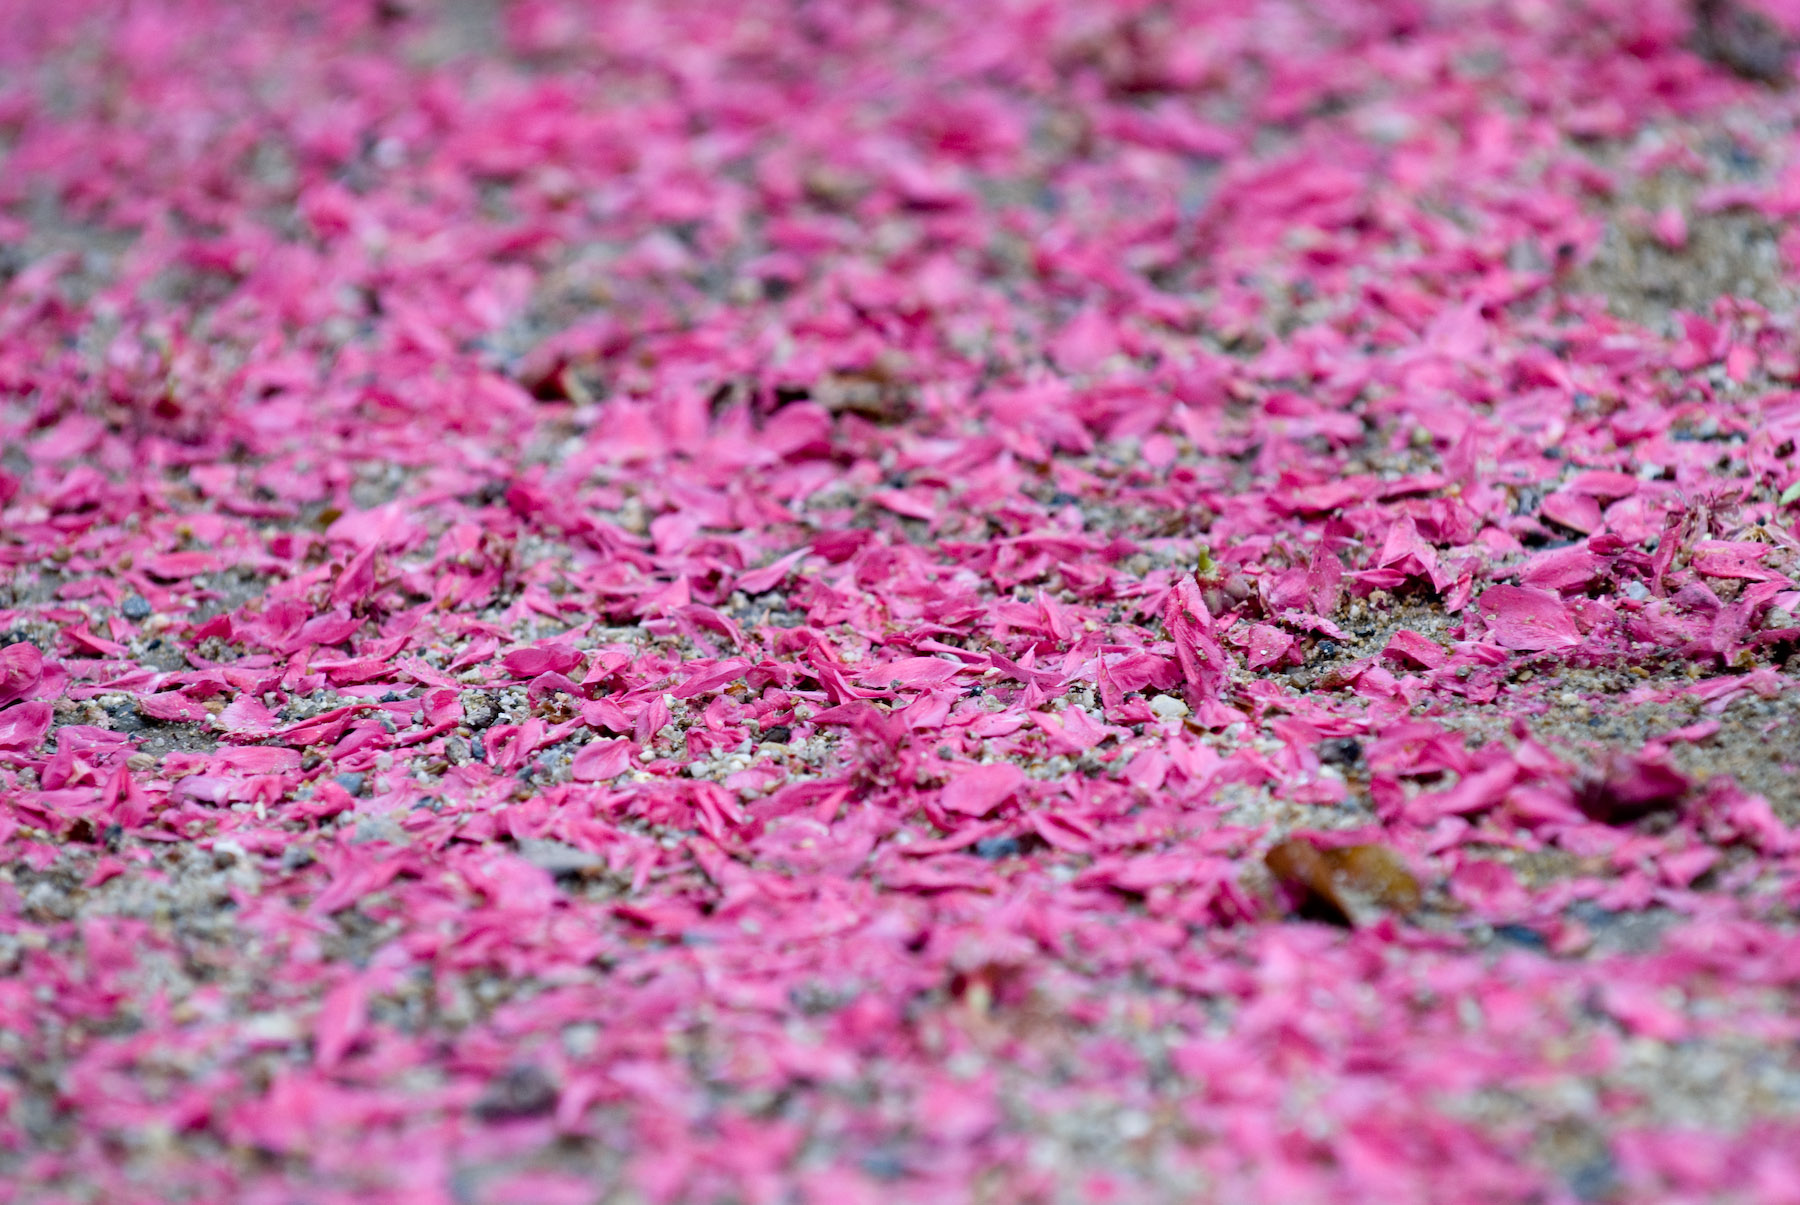 Jeffrey Friedl S Blog 187 Ugly In Pink Not All Blossoms Are